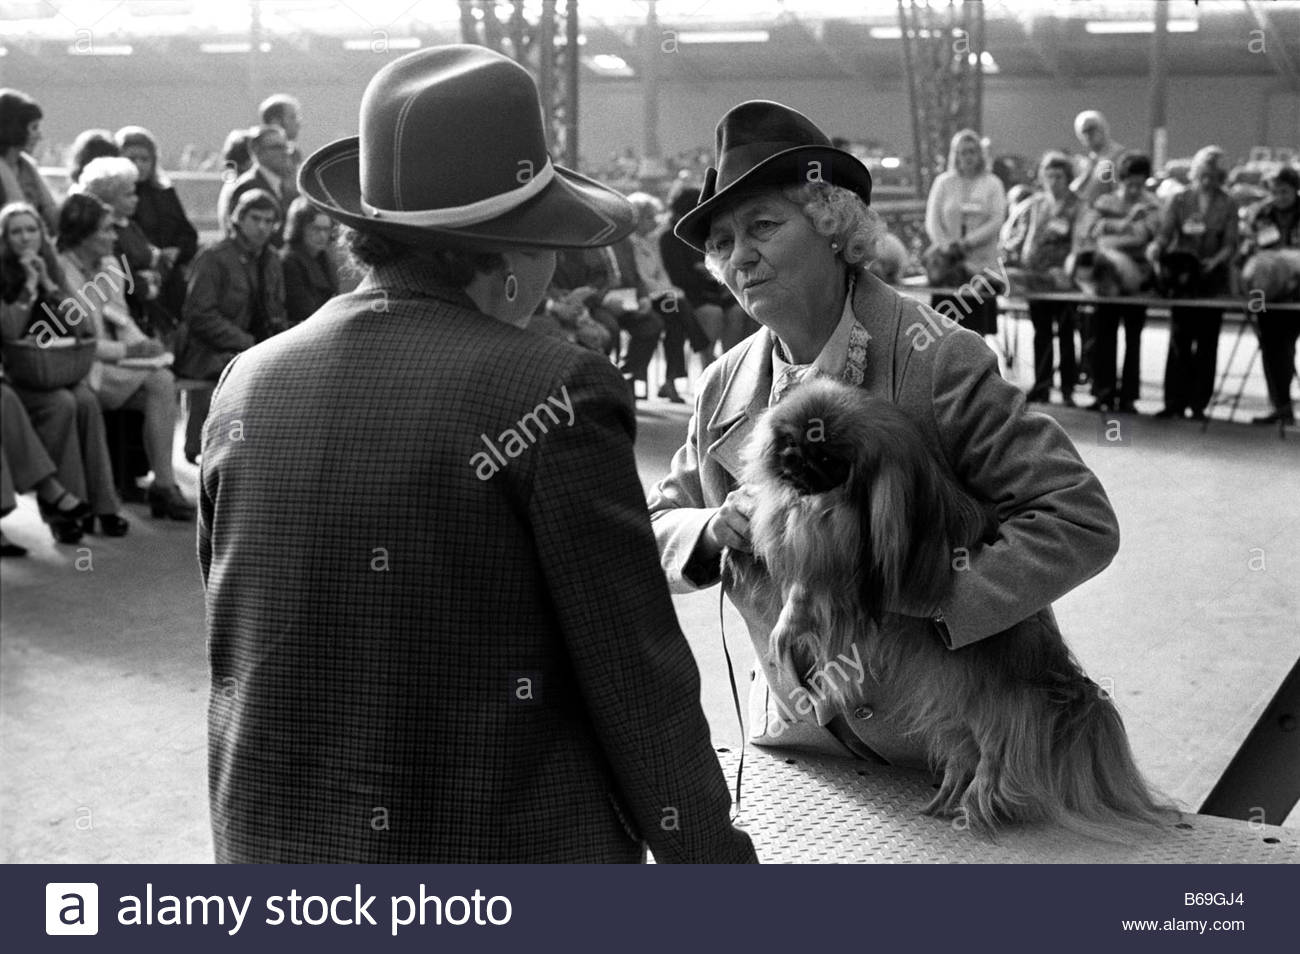 The English at play in the 1970s Part 2 Judging at Crufts Dog Show in London - Stock Image